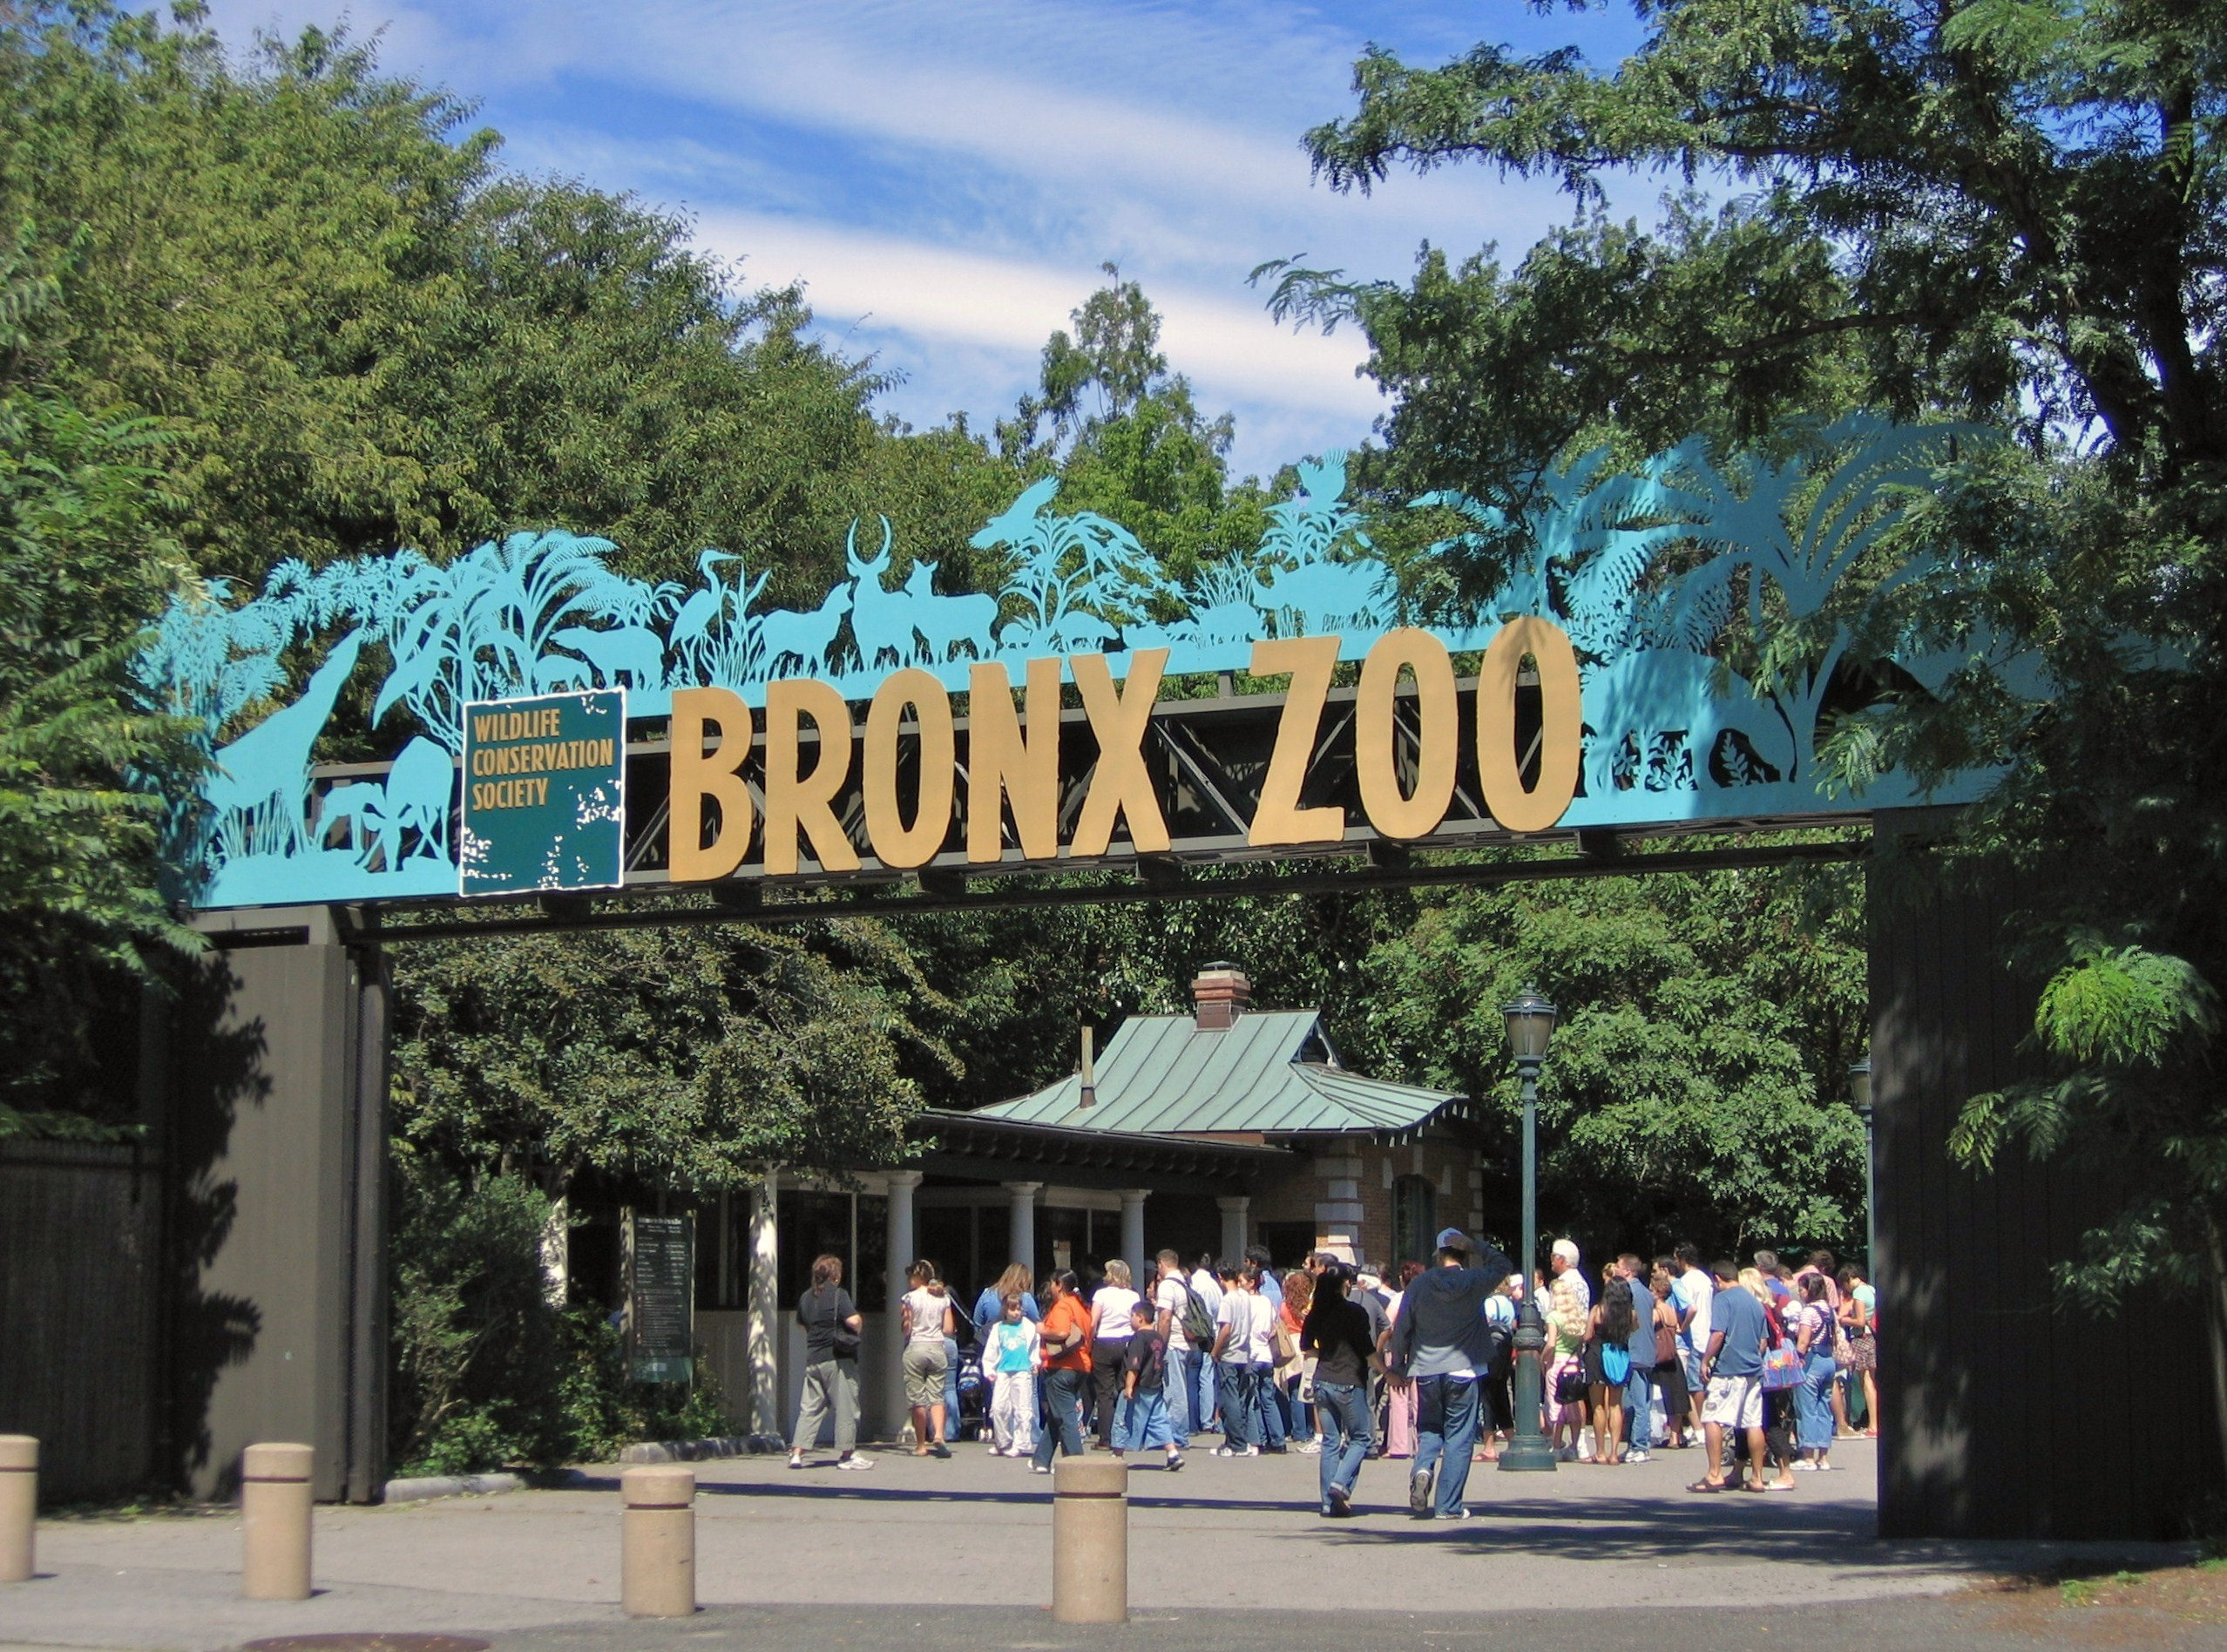 Bronx Zoo - Wikipedia, the free encyclopedia